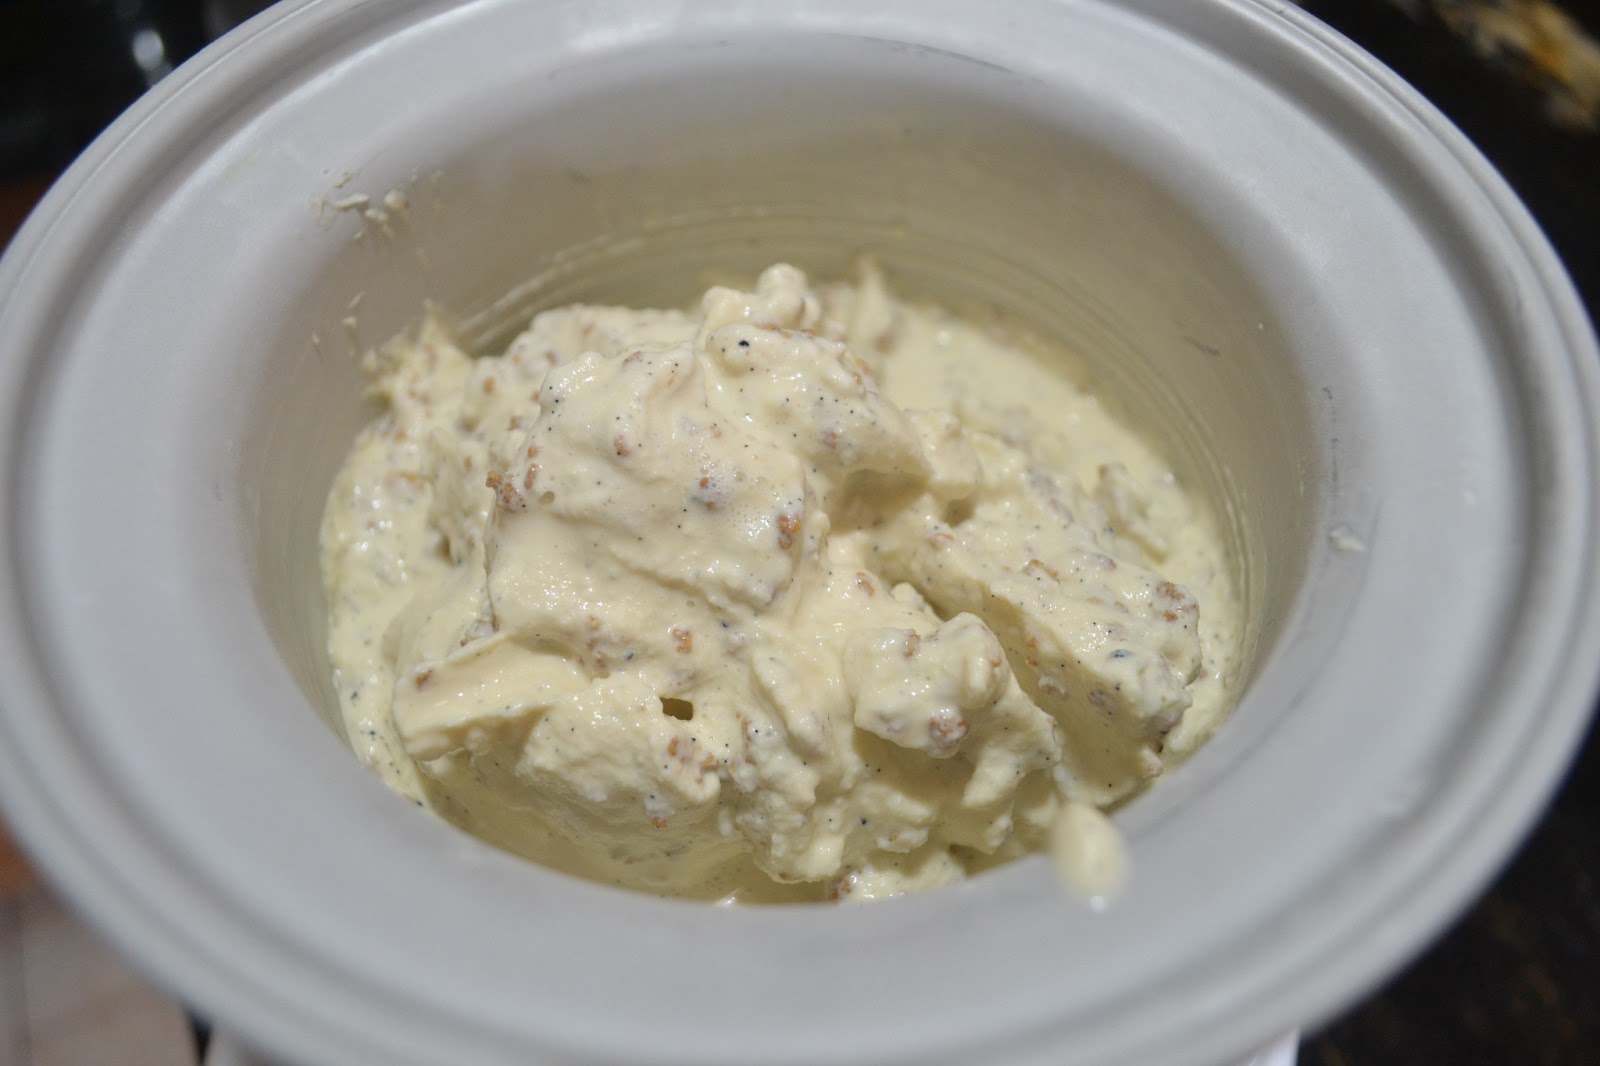 ... grape nuts ice cream recipe yummly creamy crunchy grape nuts ice cream